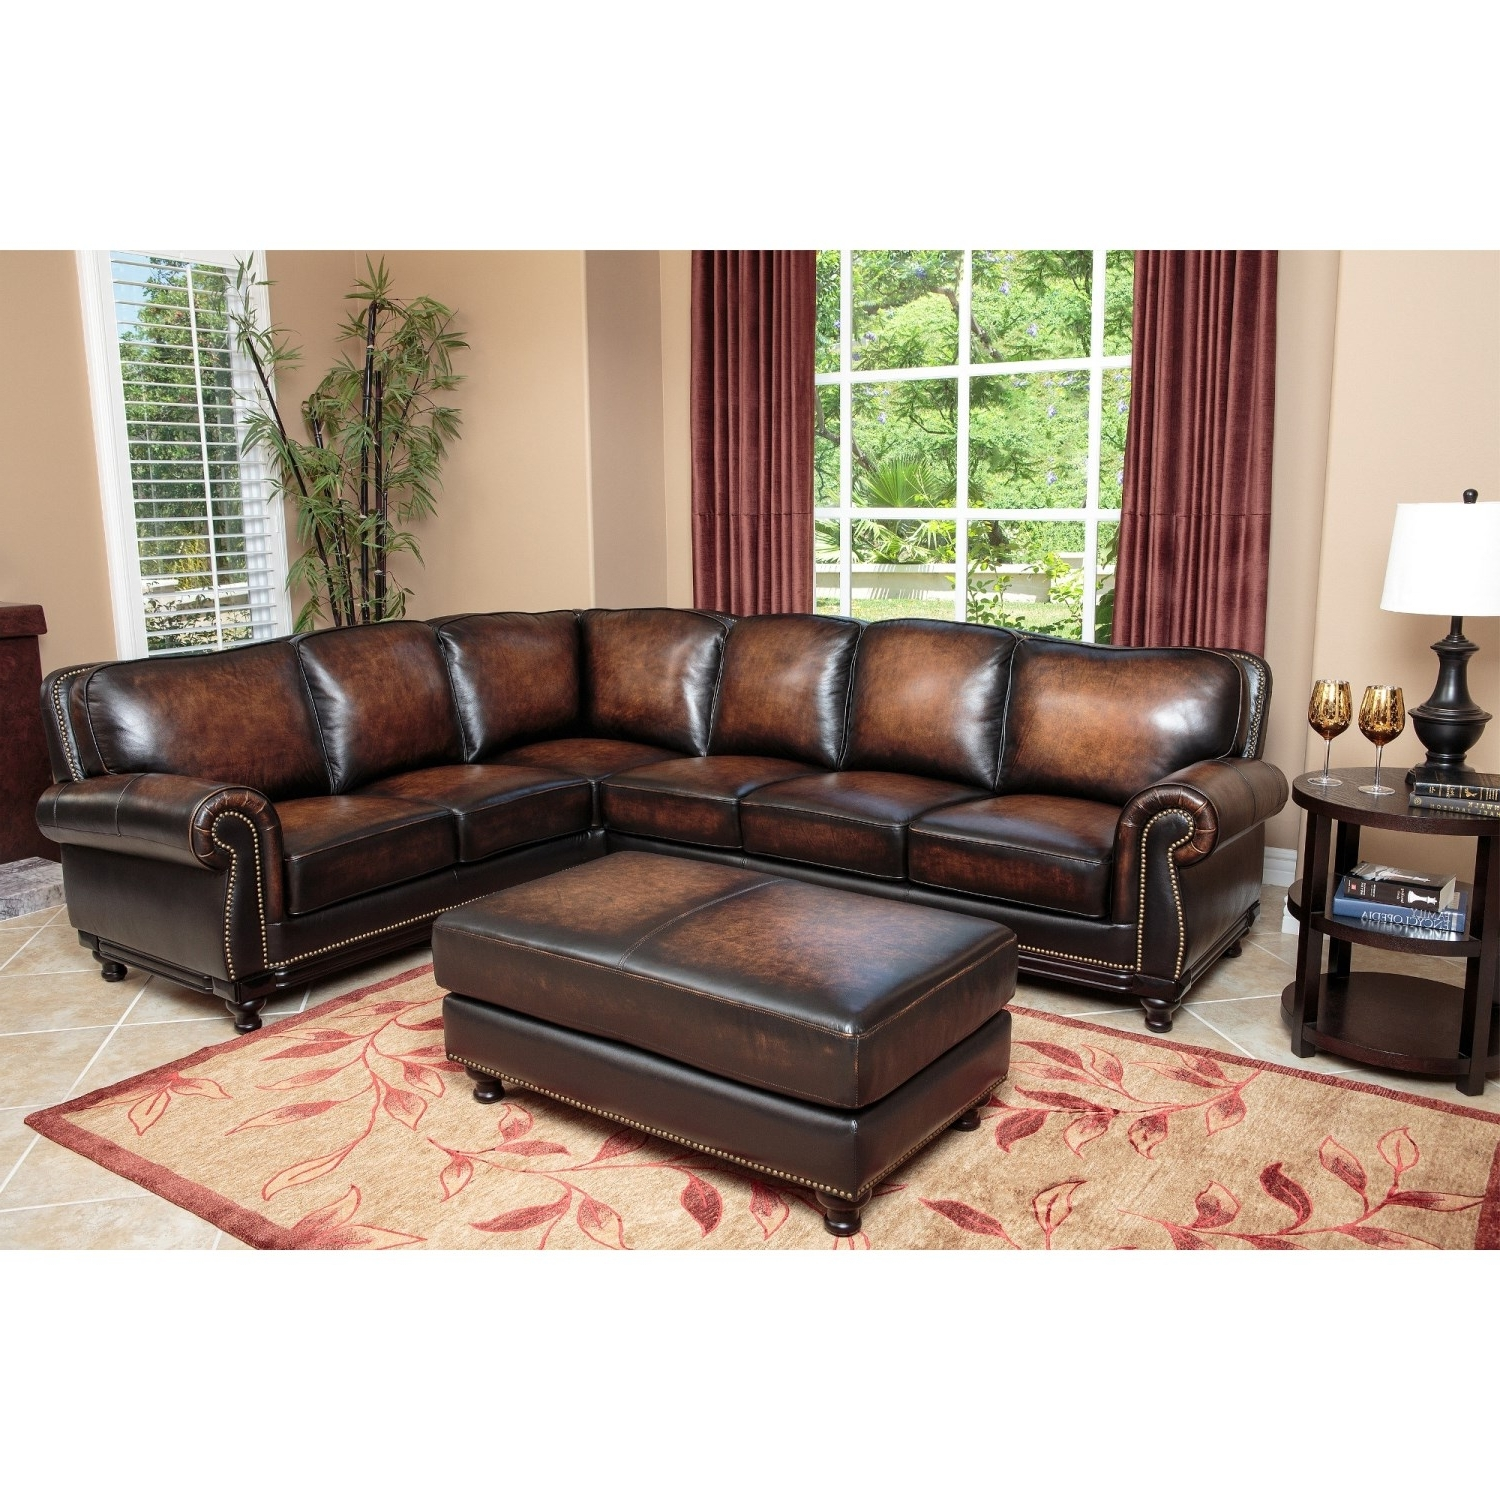 2017 Abbyson Sectional Sofas Throughout Abbyson Living Sk 5304 Brn Set Nizza Woodtrim Hand Rubbed Leather (View 1 of 15)